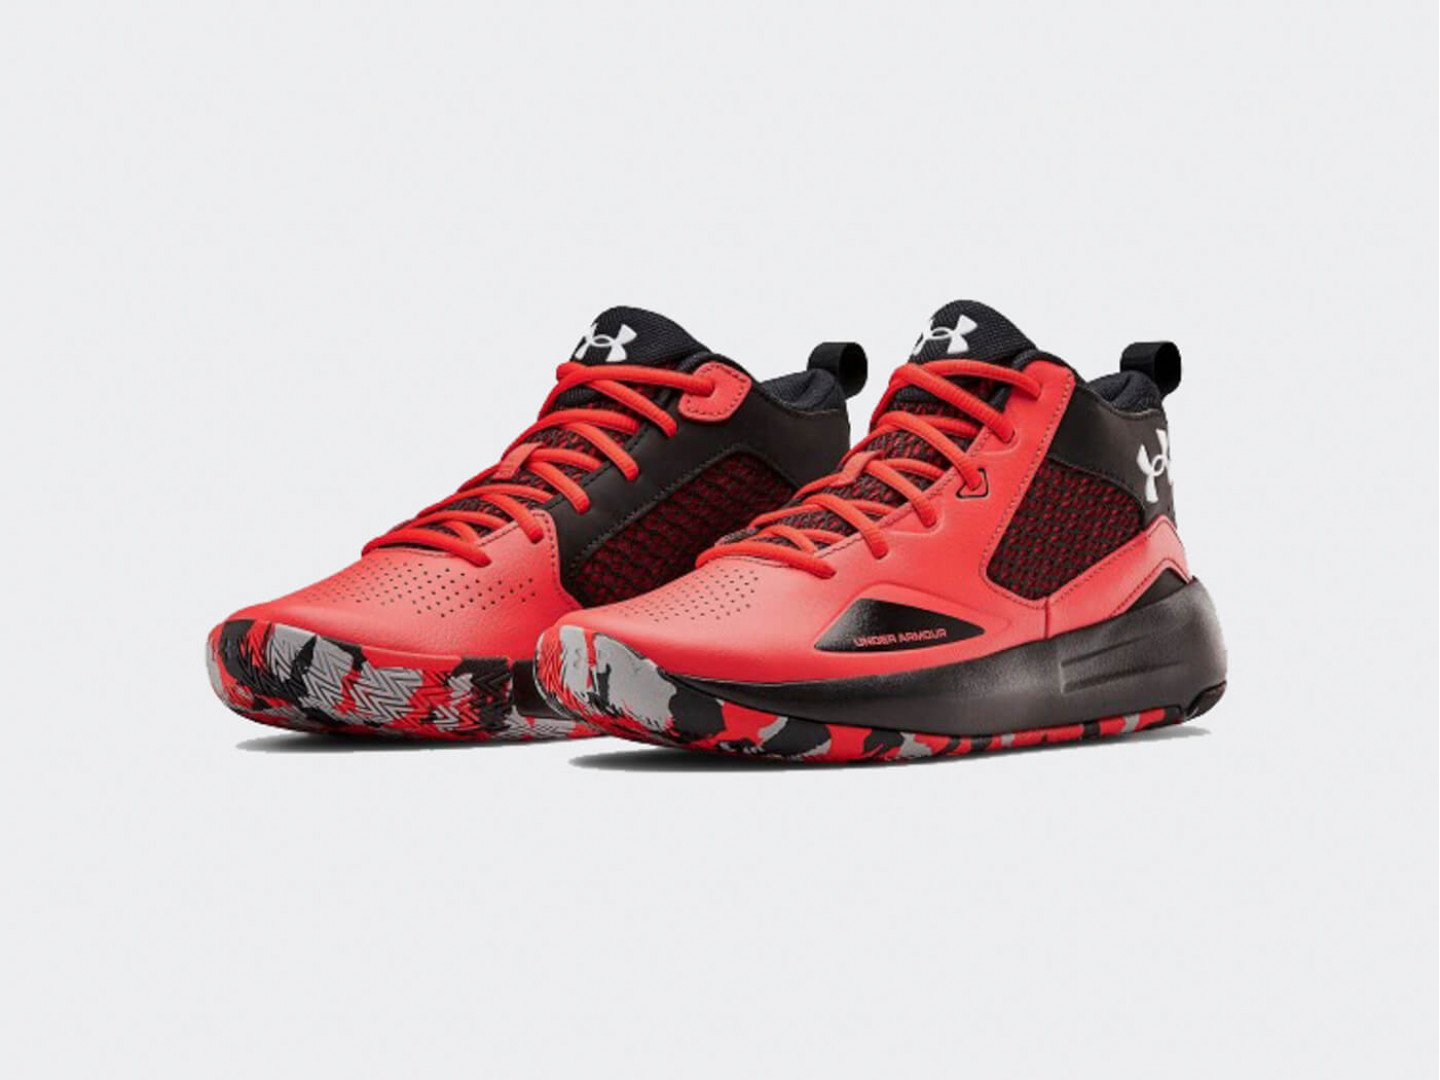 Кроссовки Under Armour Lockdown 5 / red, black